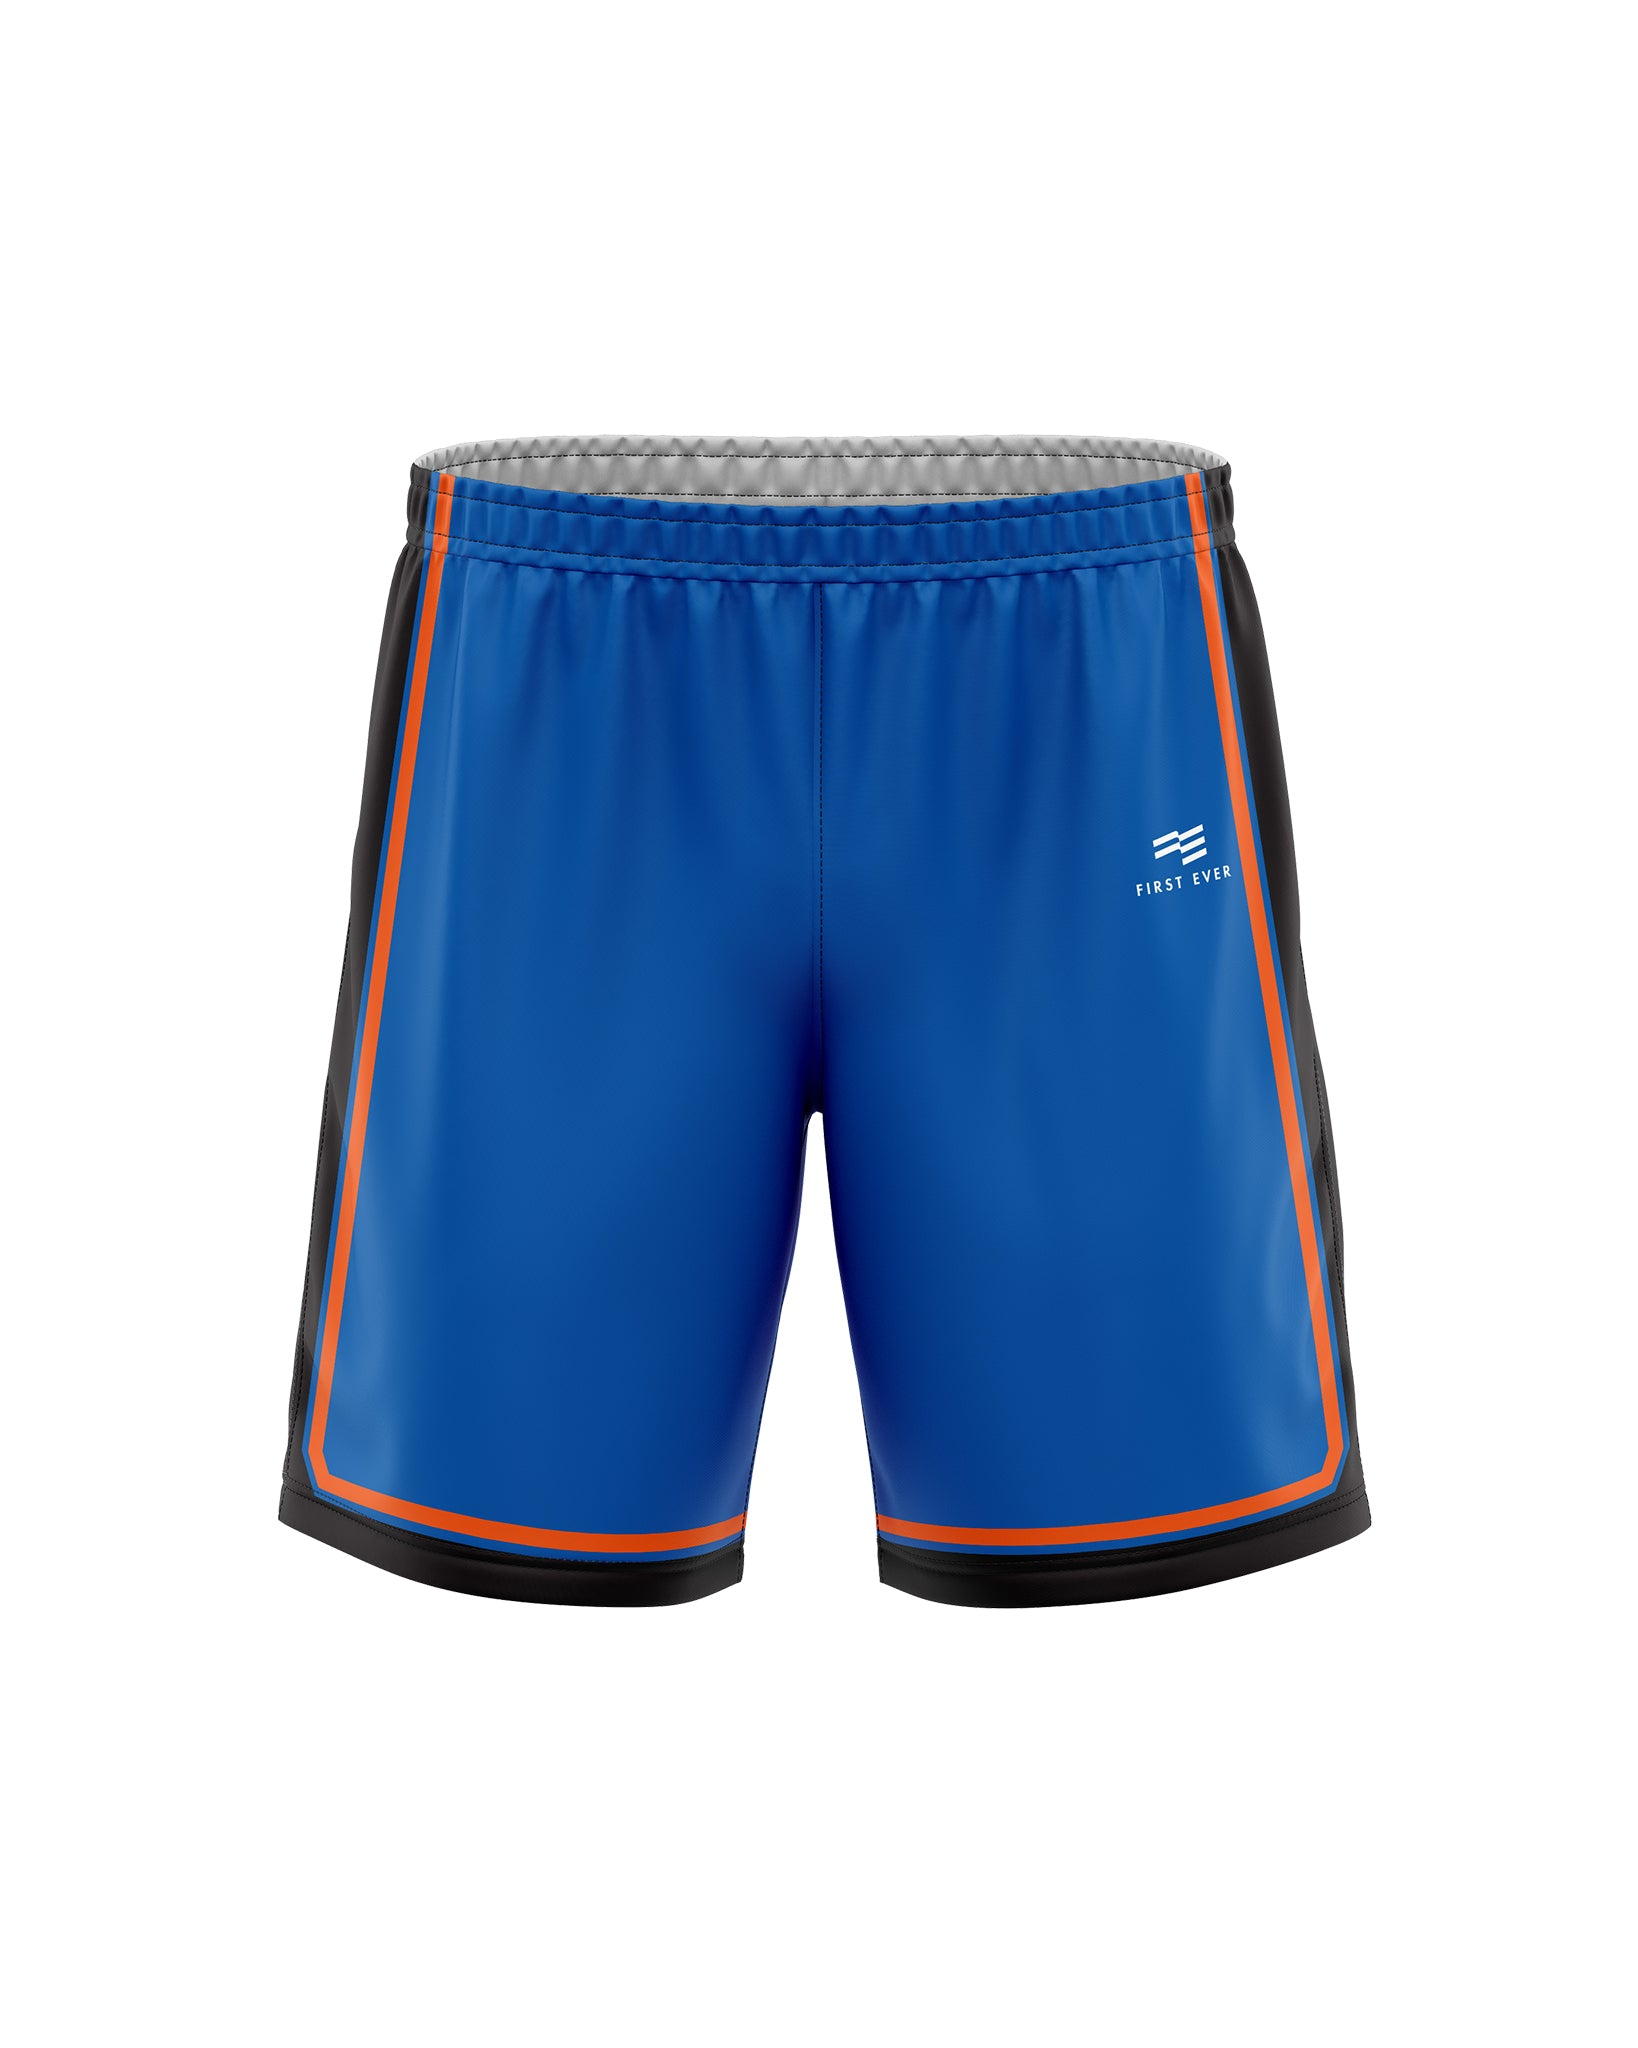 Empire Basketball Shorts - Mens